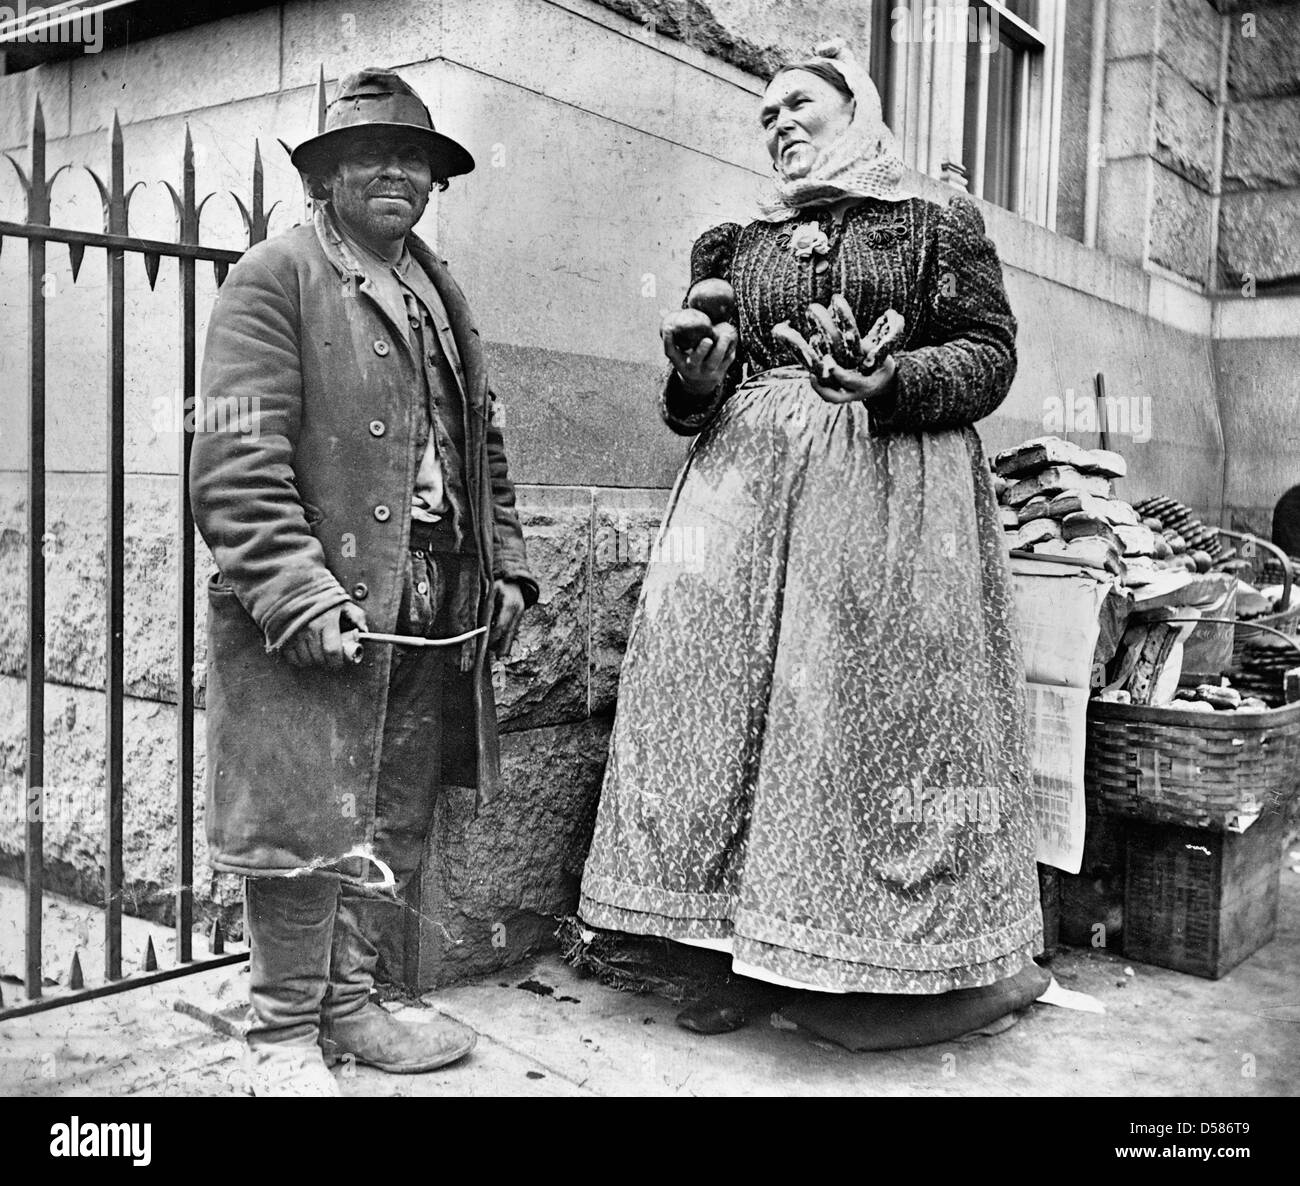 Street types of New York City: Emigrant and pretzel vendor, circa 1896 - Stock Image